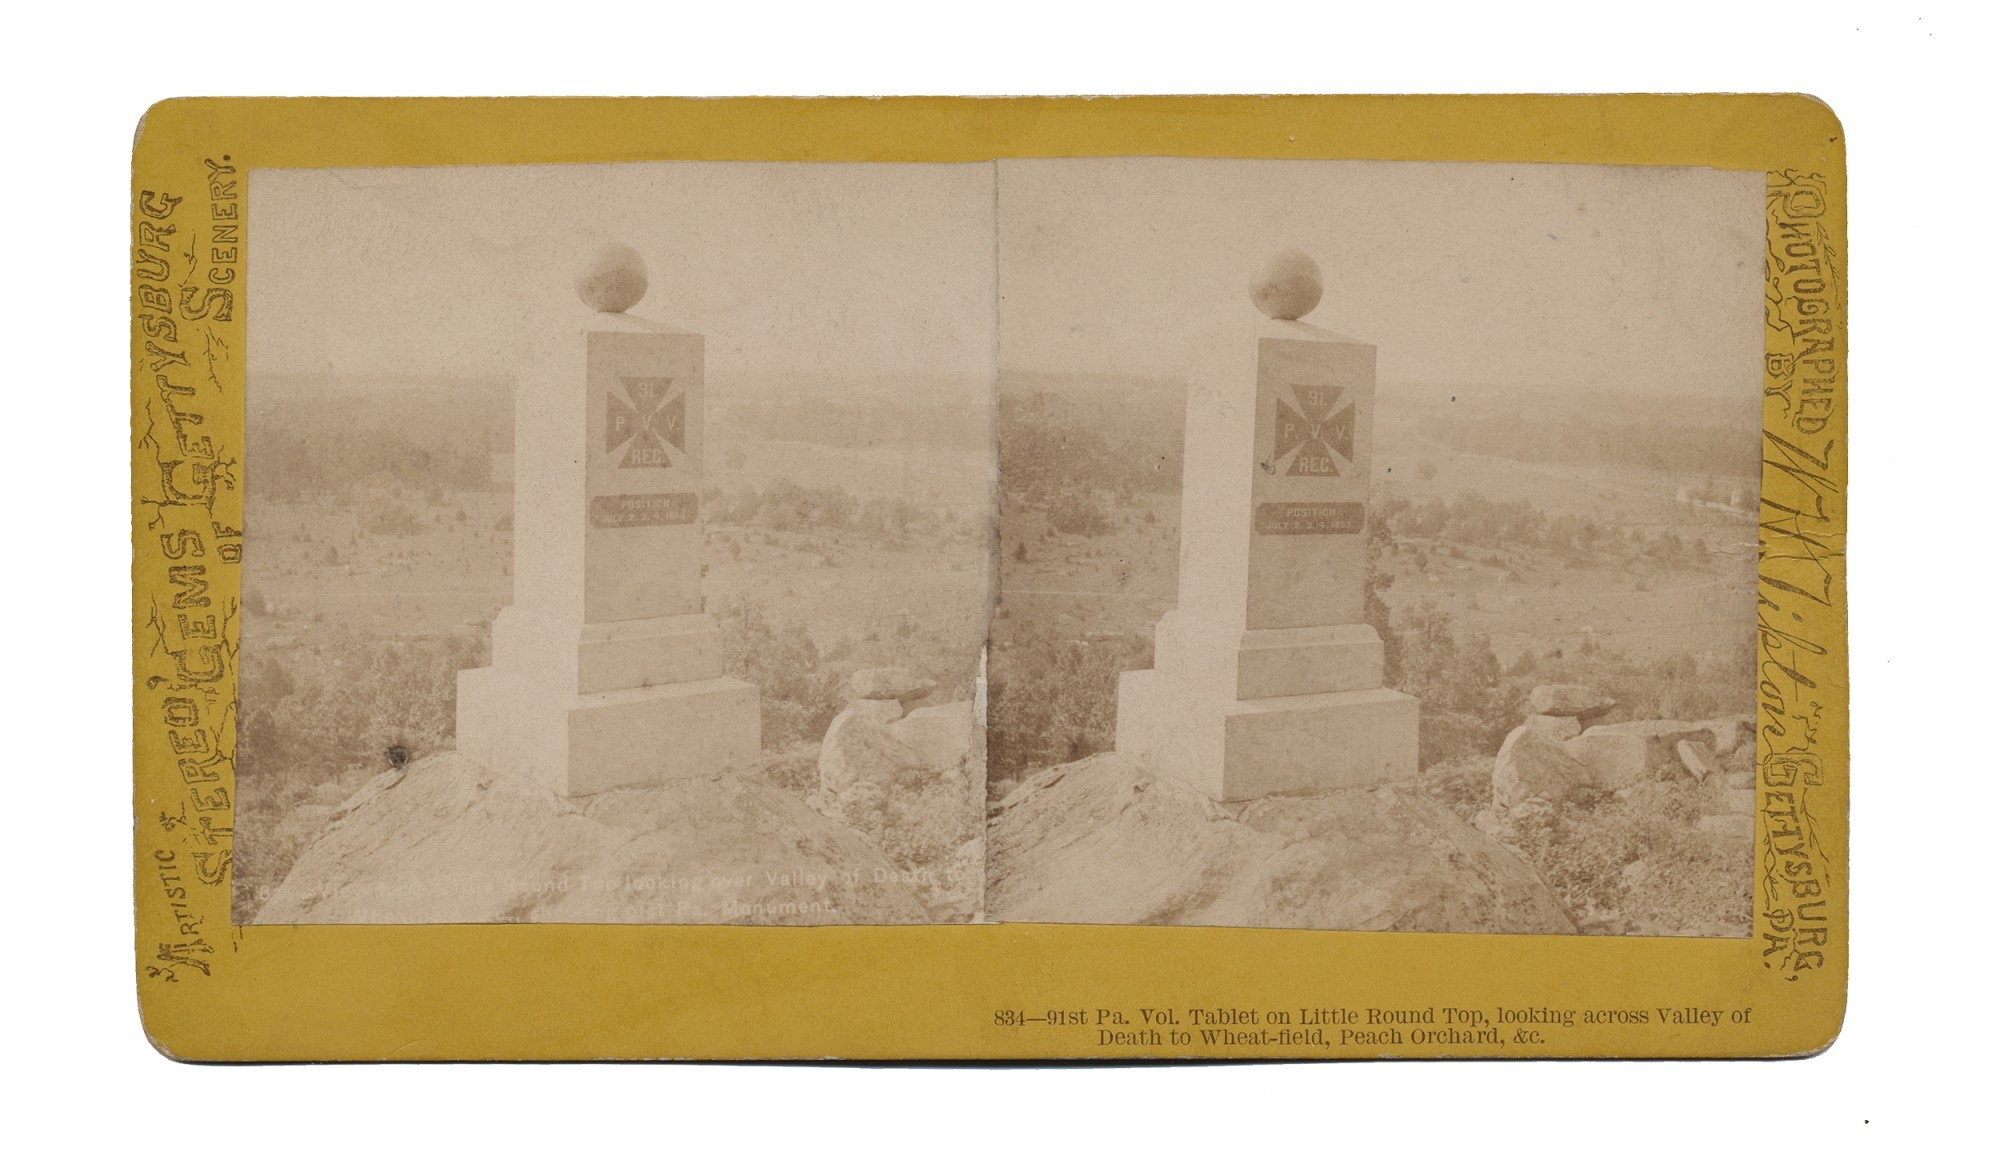 TIPTON STEREO VIEW OF 91ST PENNSYLVANIA MONUMENT ON LITTLE ROUND TOP